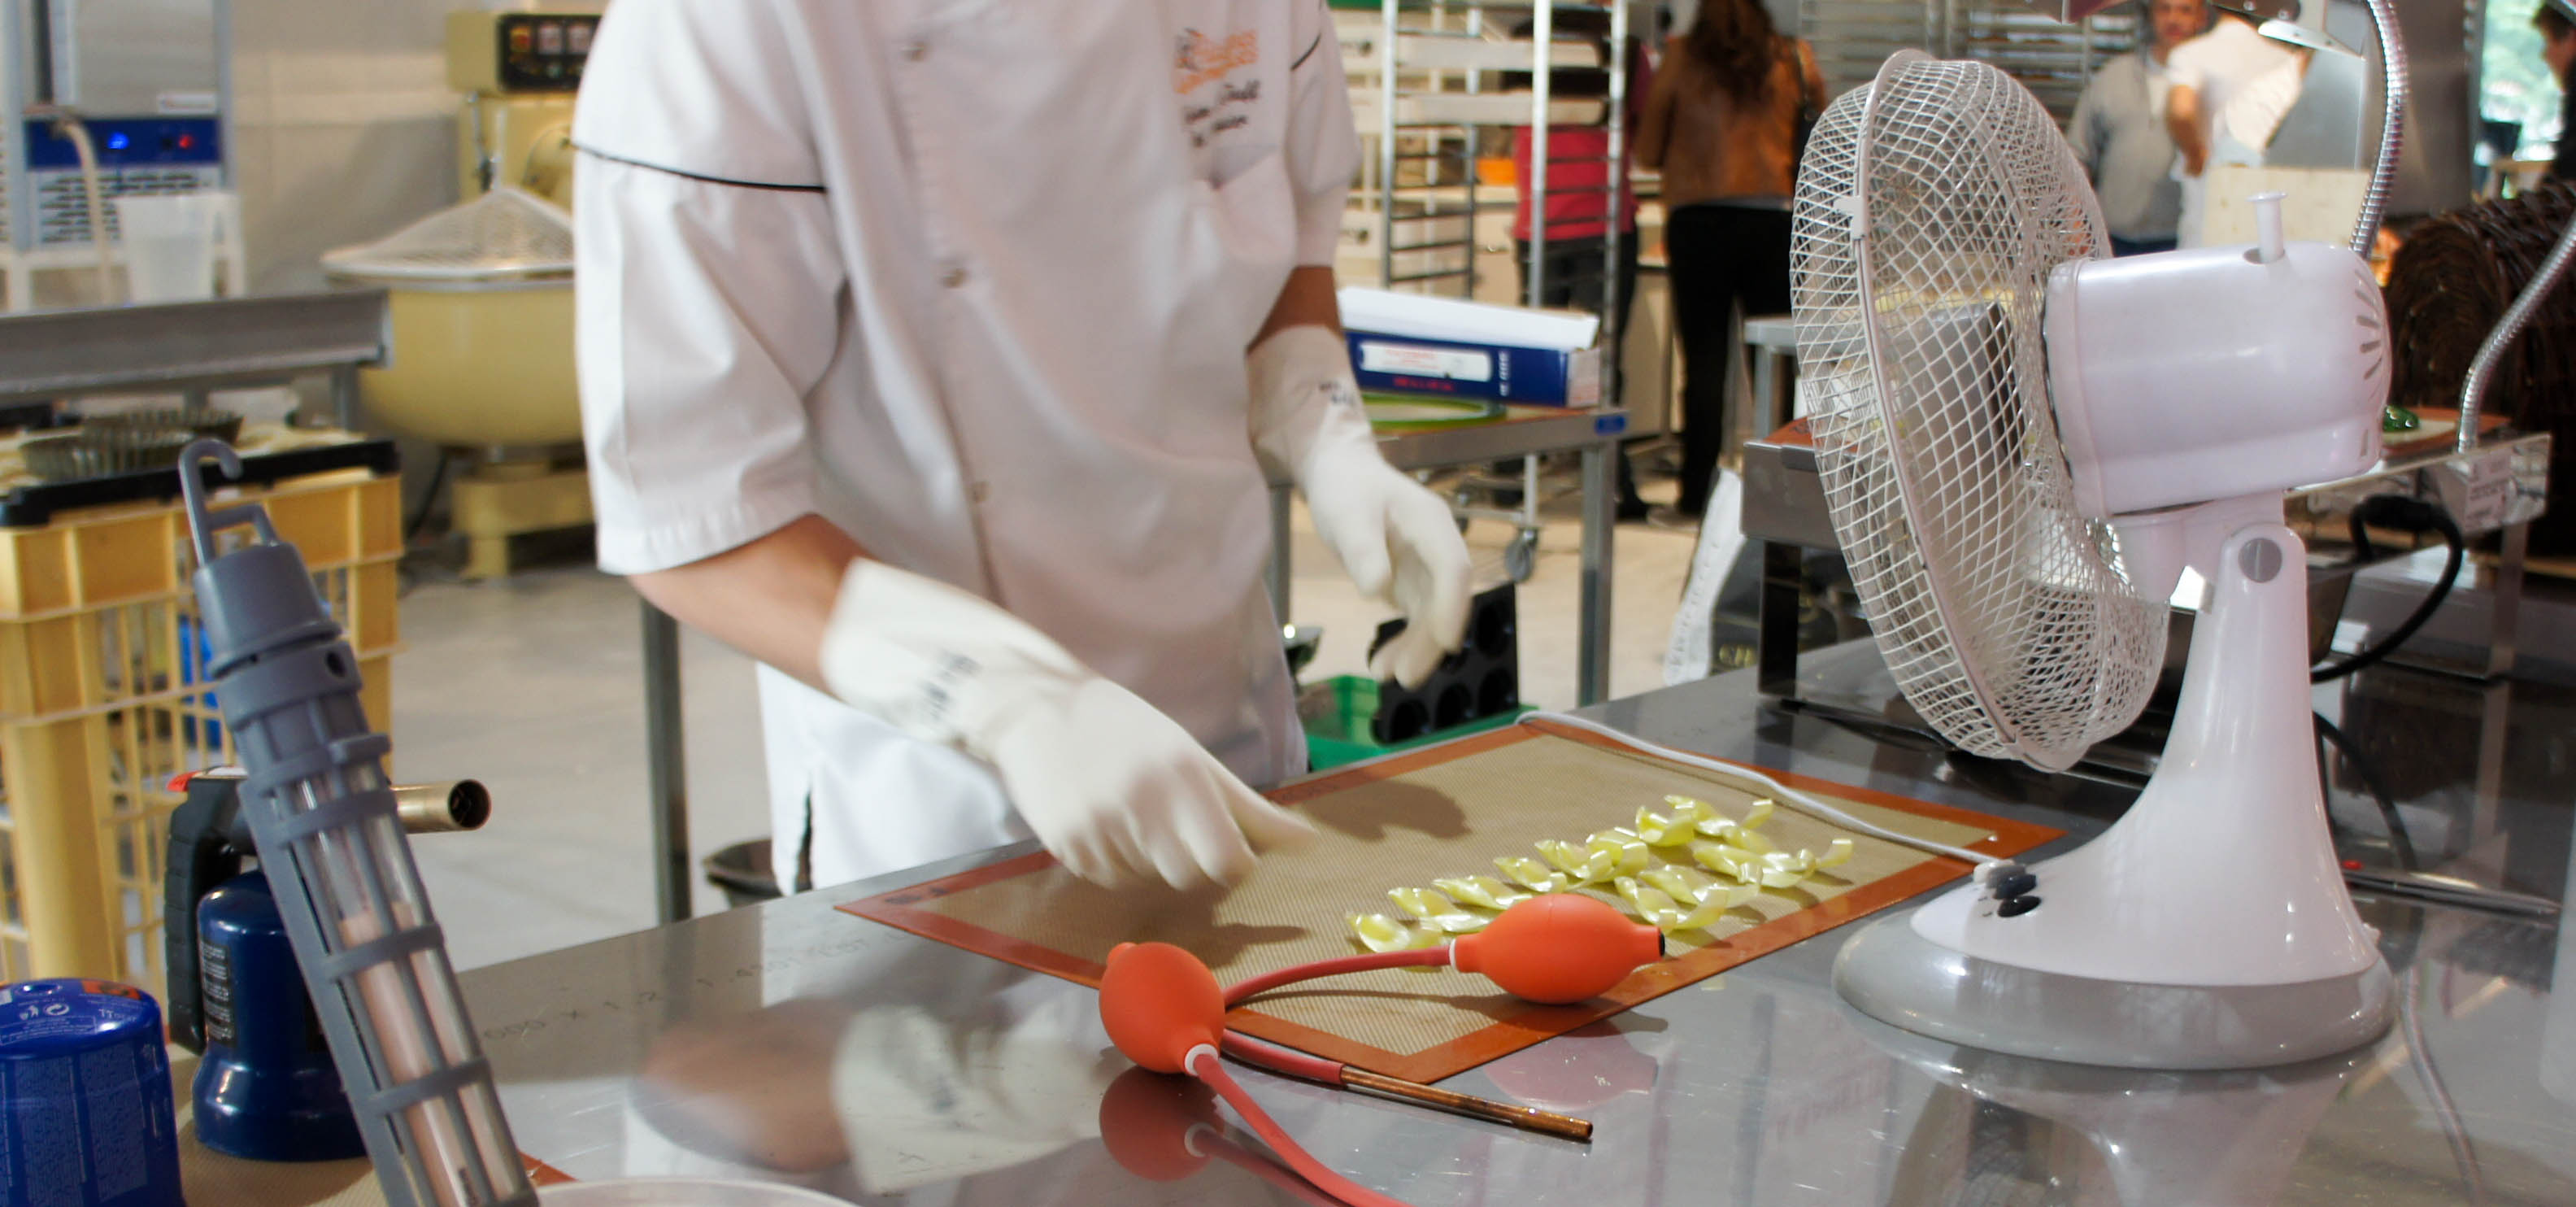 executive chef at par se essay As the pastry chef at per se, anna is responsible for overseeing the production of all the dessert offerings and chocolate production for the restaurant, while ensuring that her team exceeds the guests' expectations and standards of excellence set by chef thomas keller.